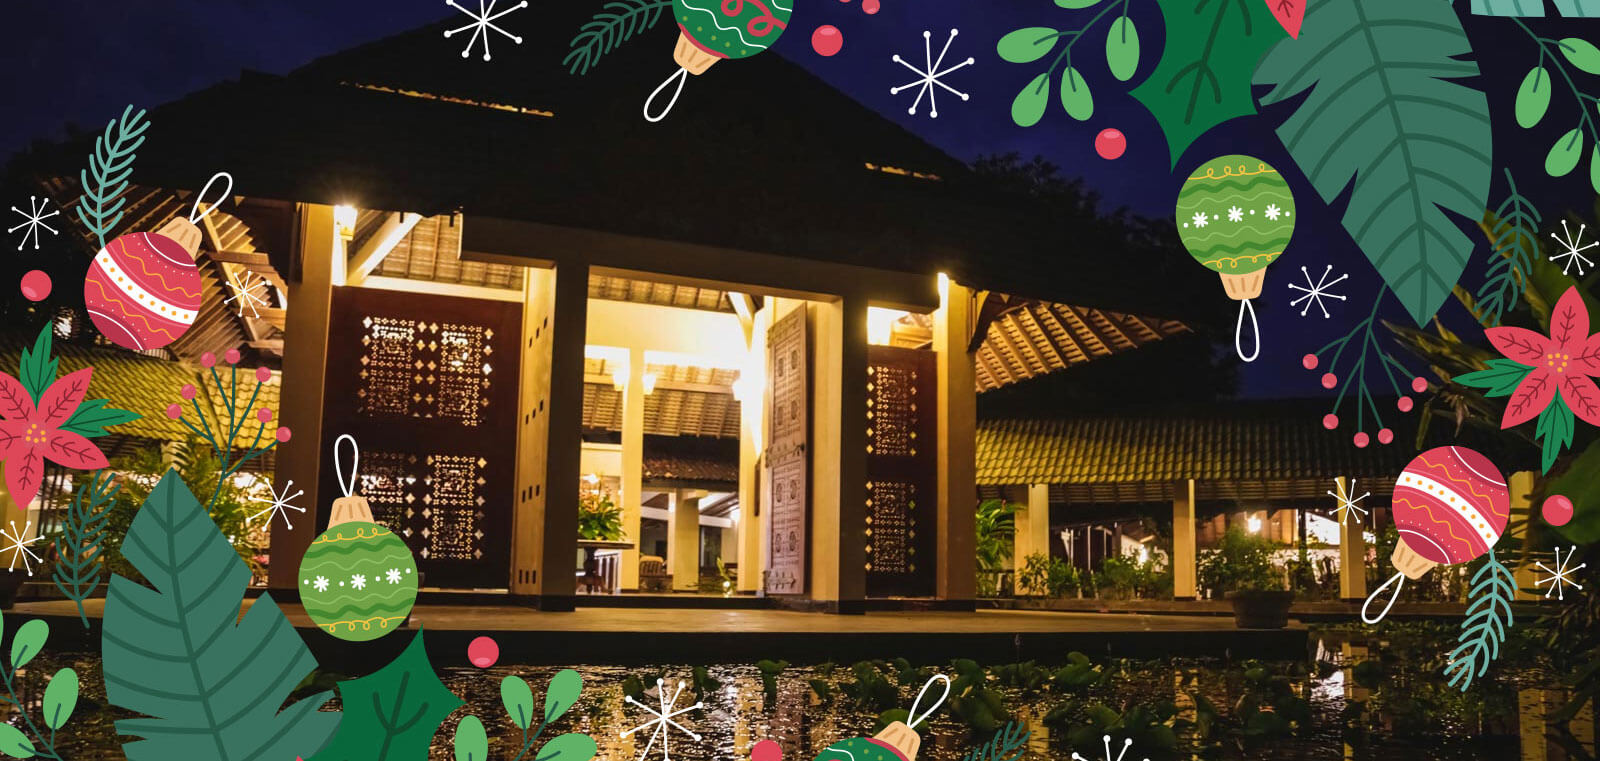 The Palms Hotel, a beachfront resort by the Golden Mile Beach in Sri Lanka